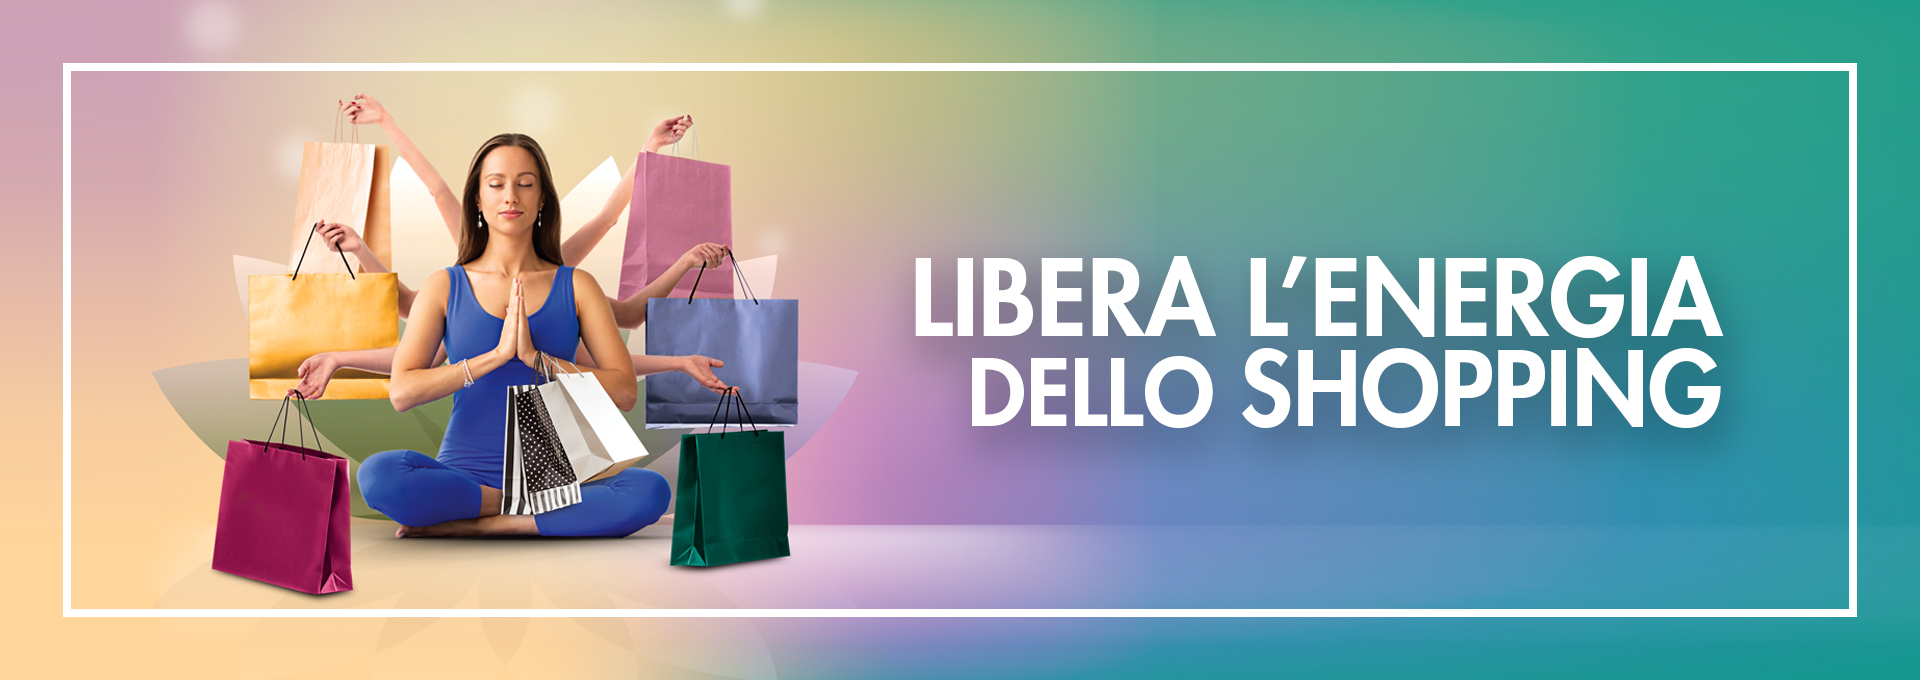 banner_istituzionale_energia_shopping